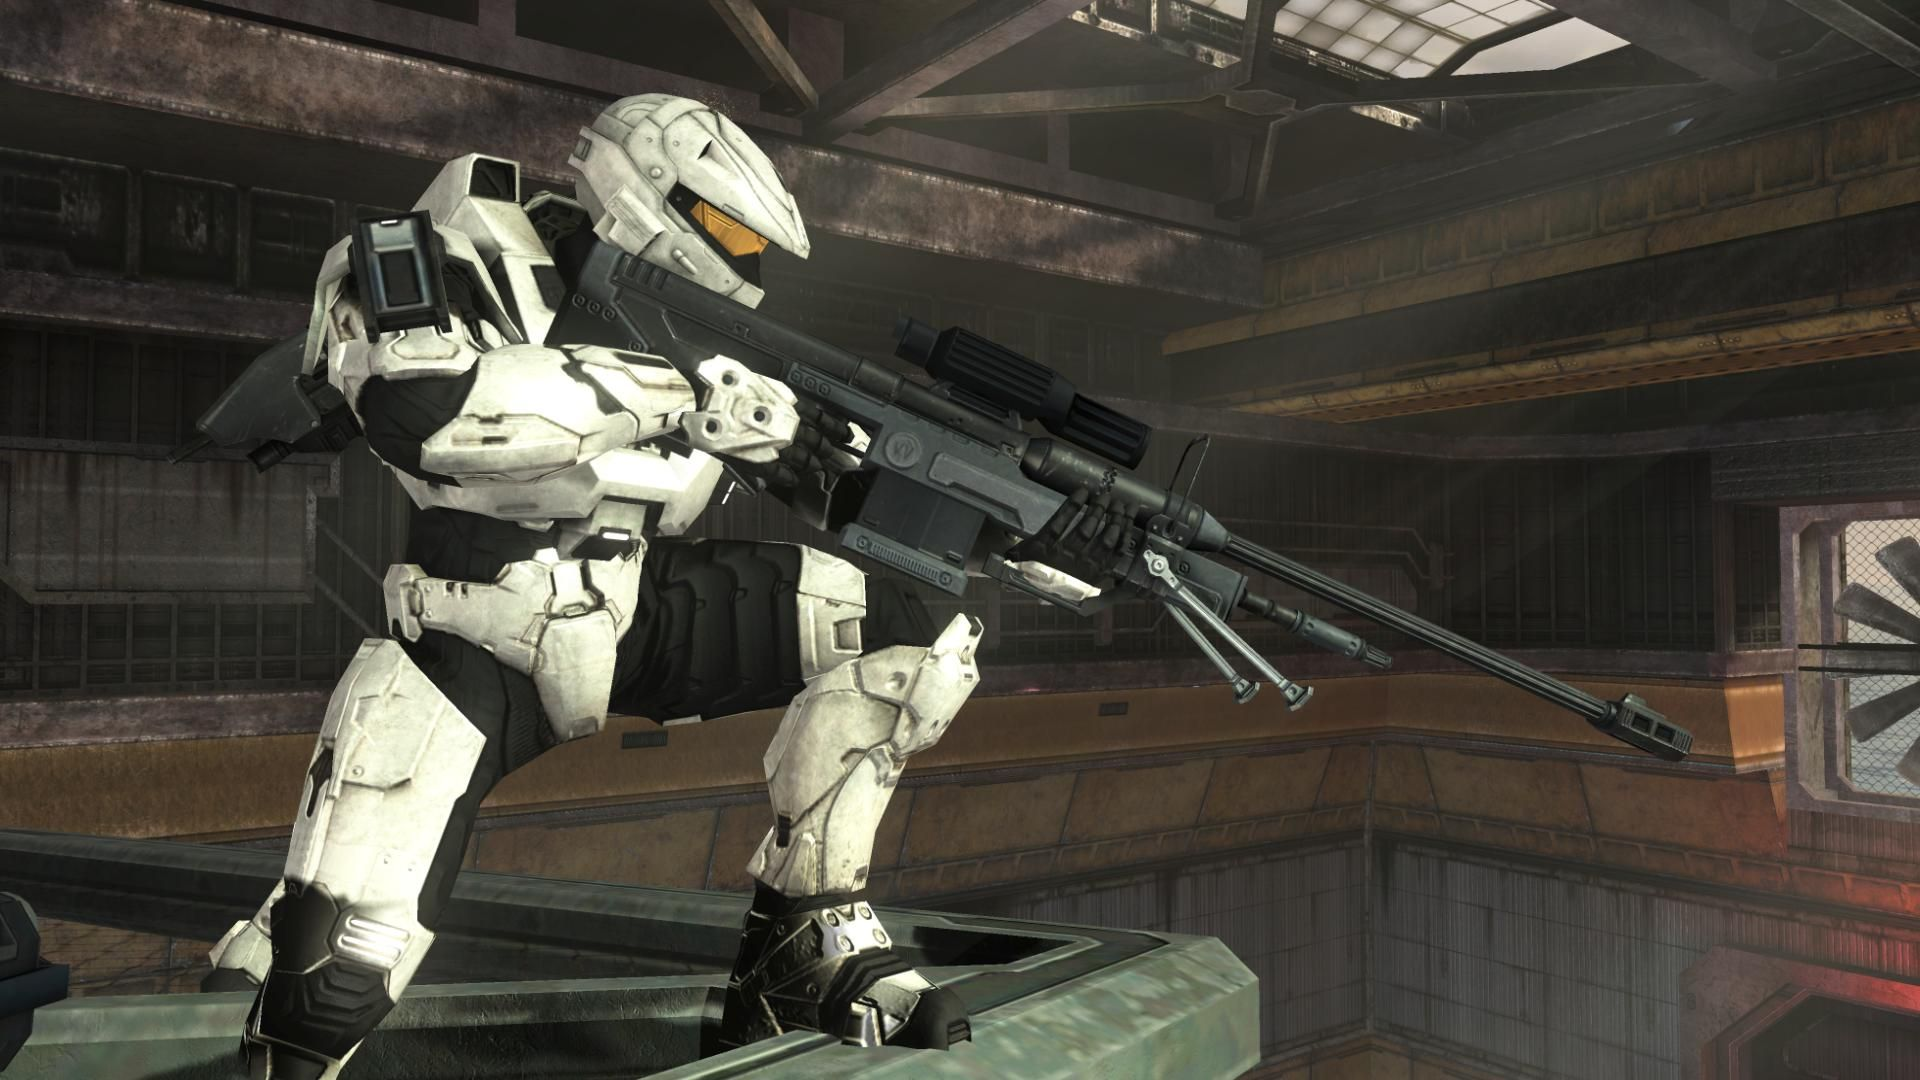 Google themes video - Halo Images Halo Reach Sniper Google Themes Halo Reach Sniper Google Wallpapers